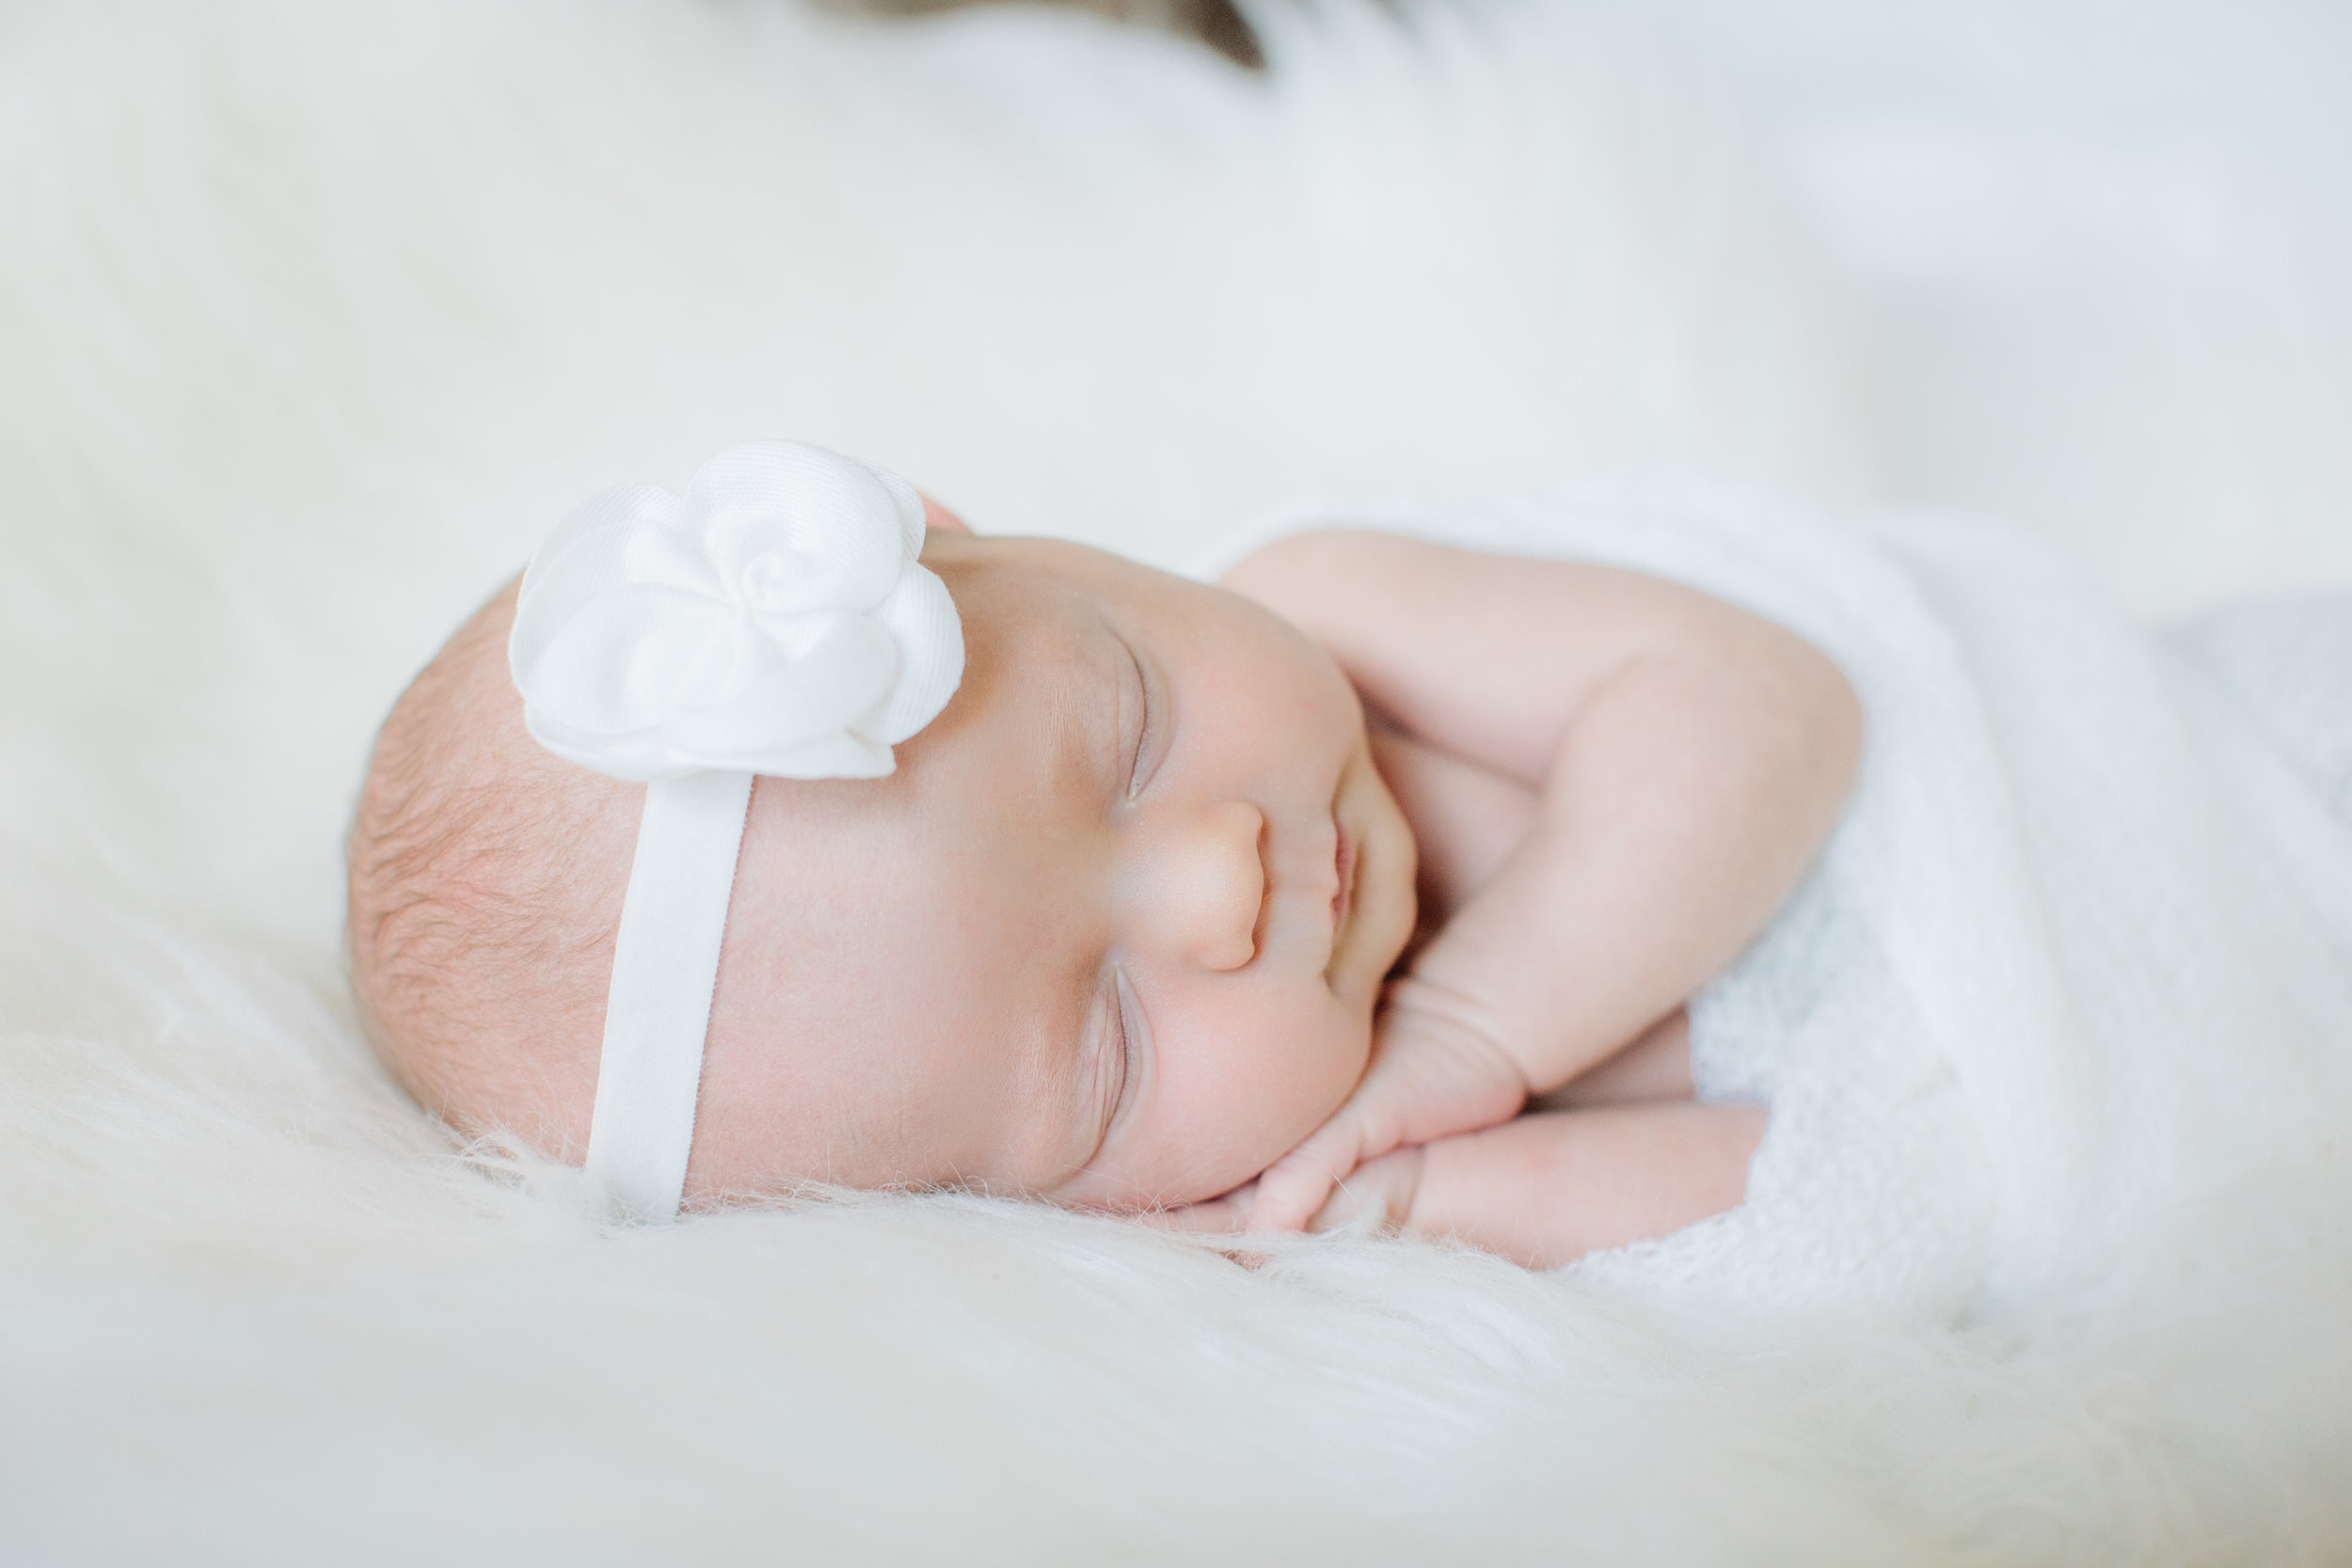 Newborn-Photo-005-5DM39524.jpg